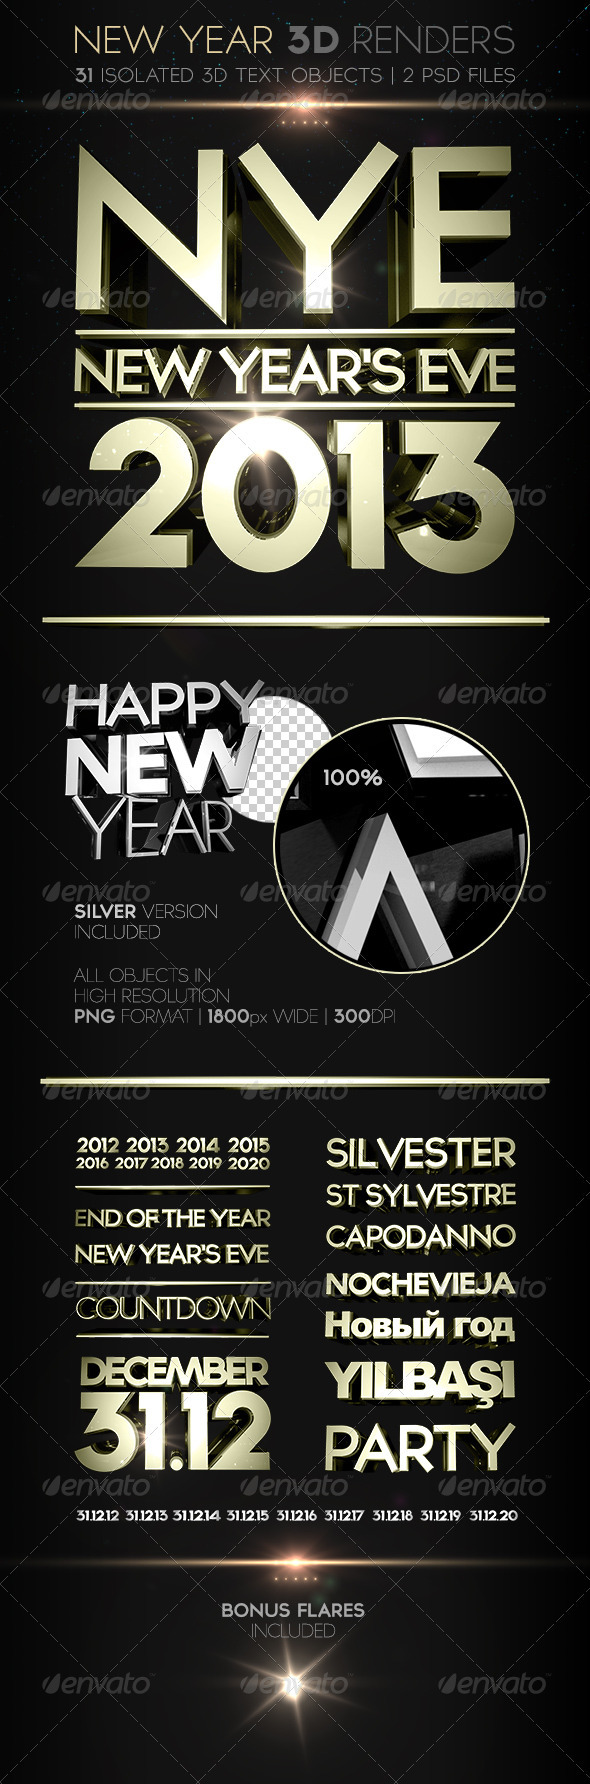 GraphicRiver New Year 3D Renders 3503305